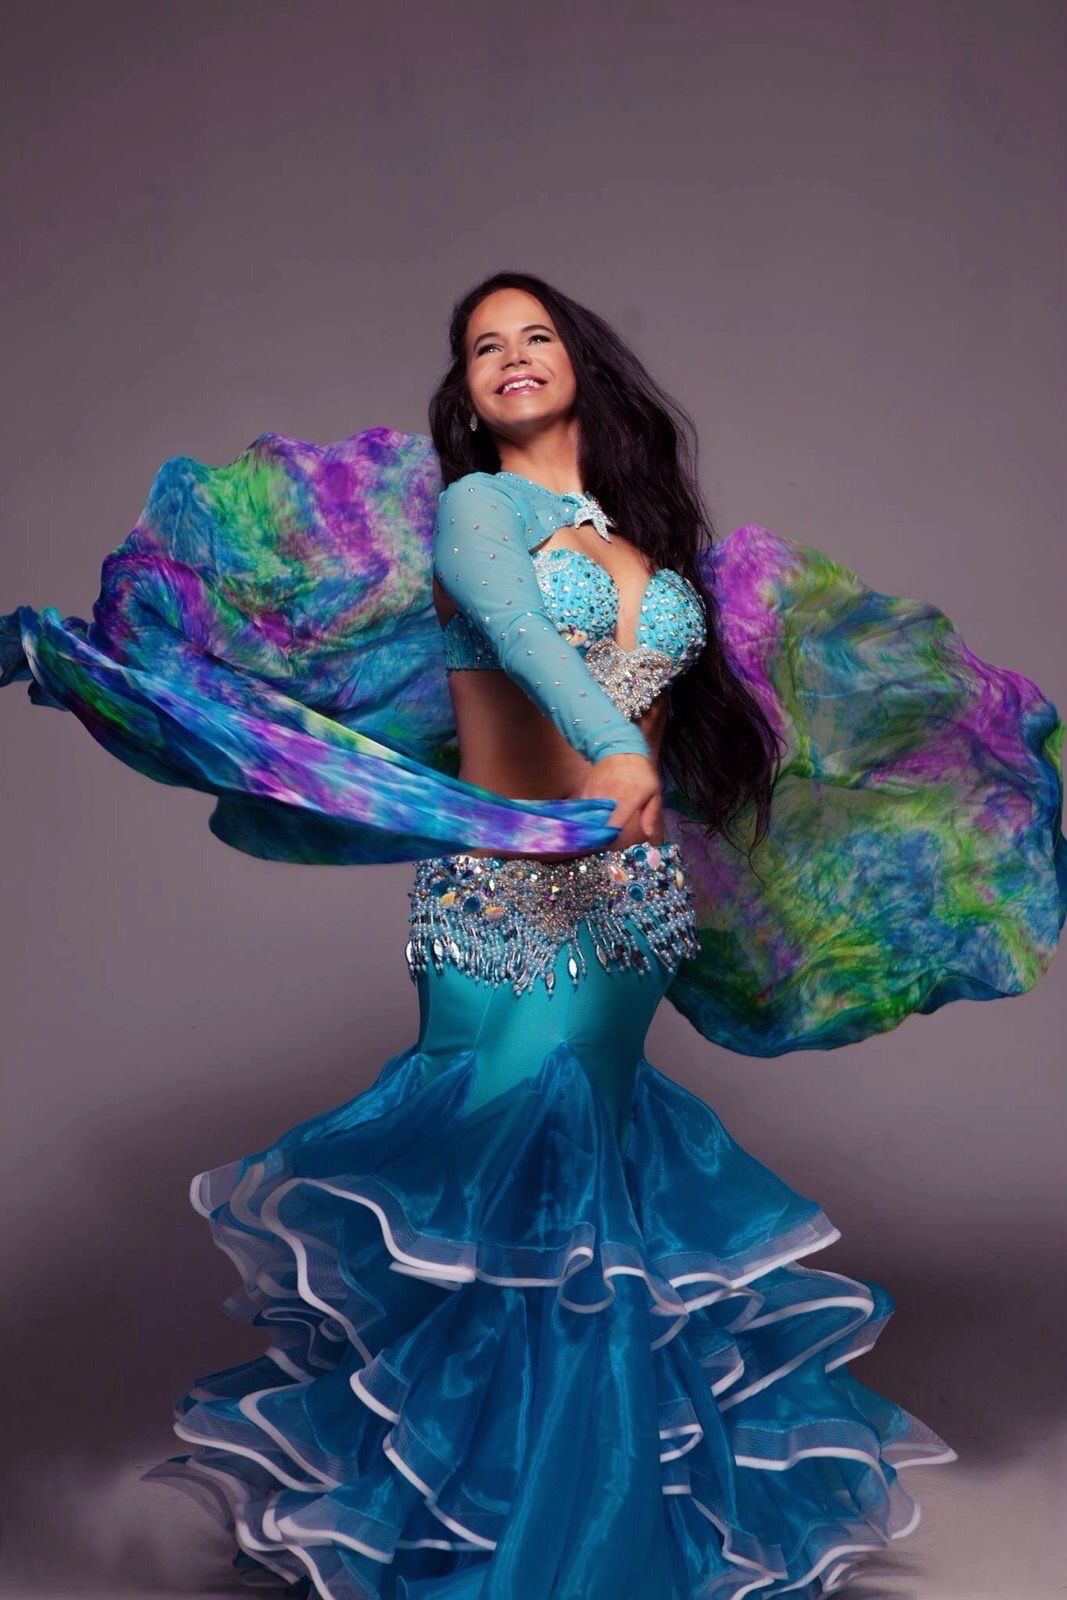 Mermaid Bellydancer Photography By Maggy Dominika Veil By Mirabesque Dress By Dogan Gok Oryantal Dansoz Bellydan Bauchtanz Bauchtanzerin Bauchtanzkostume